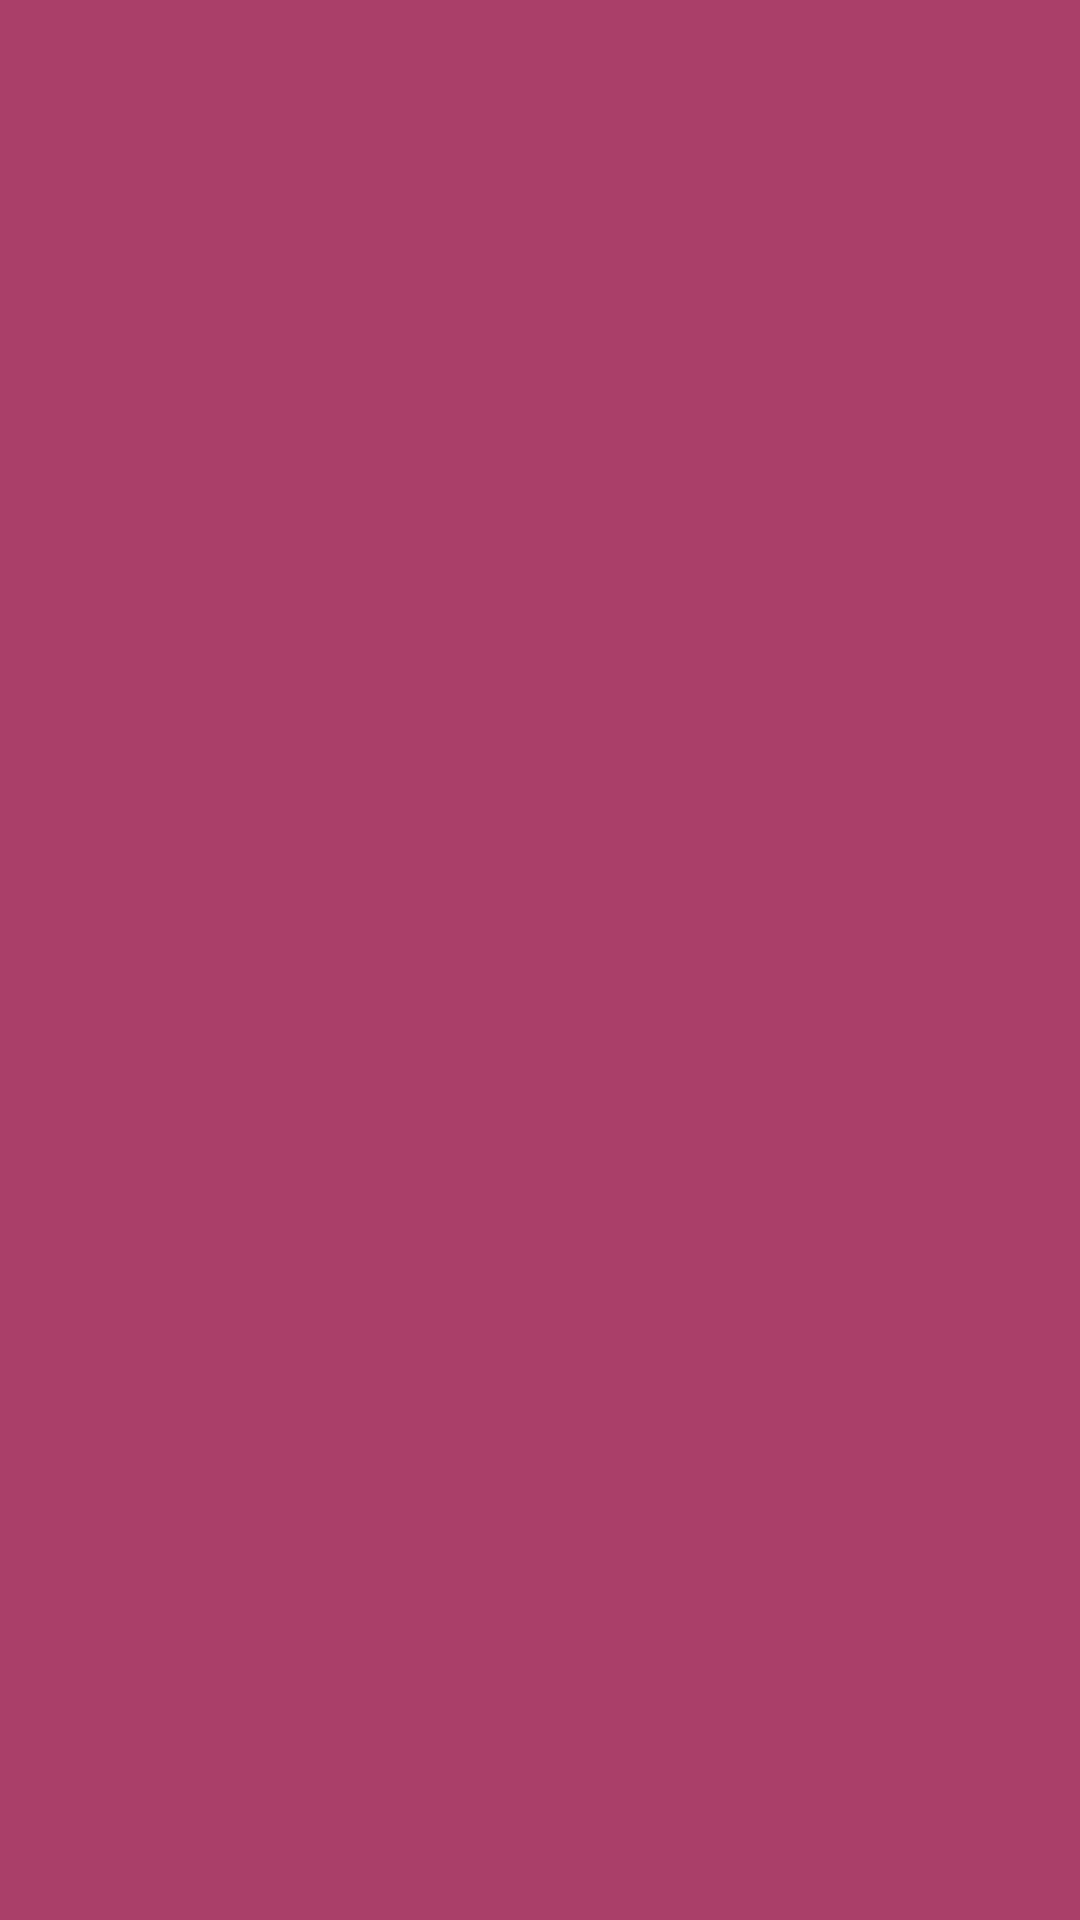 1080x1920 Medium Ruby Solid Color Background